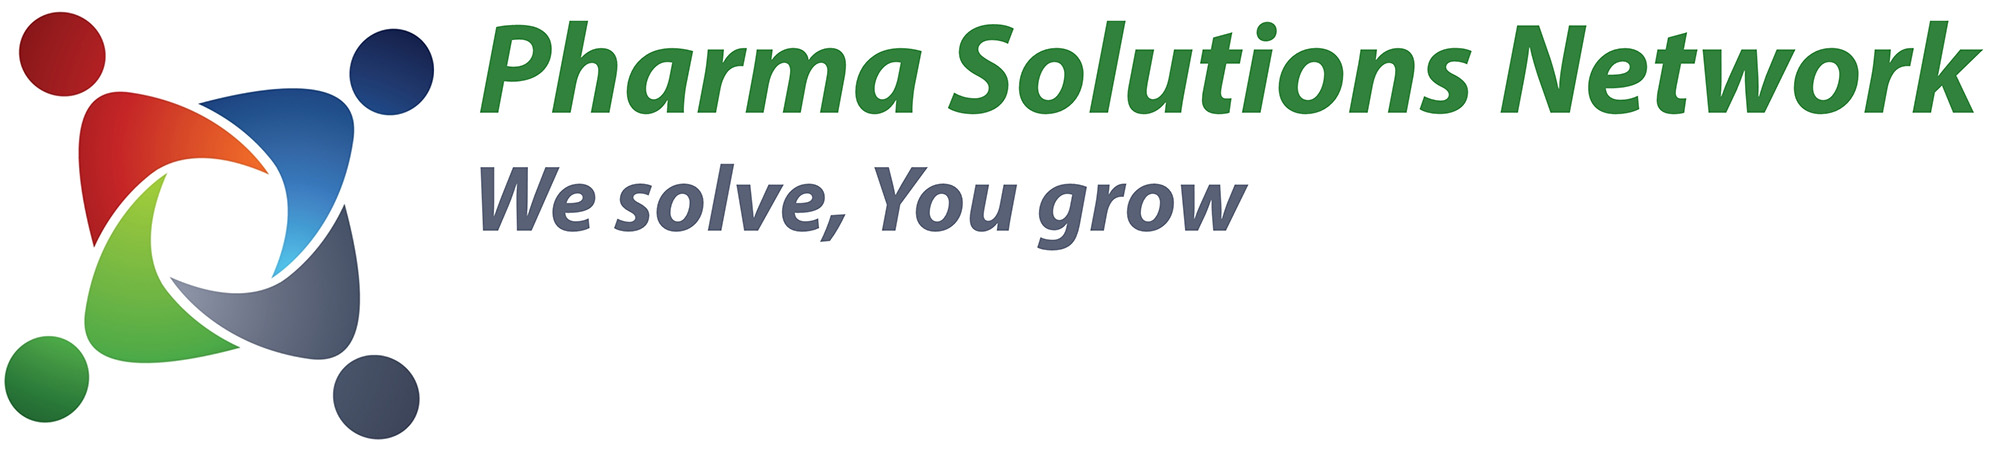 Pharma Solutions Network